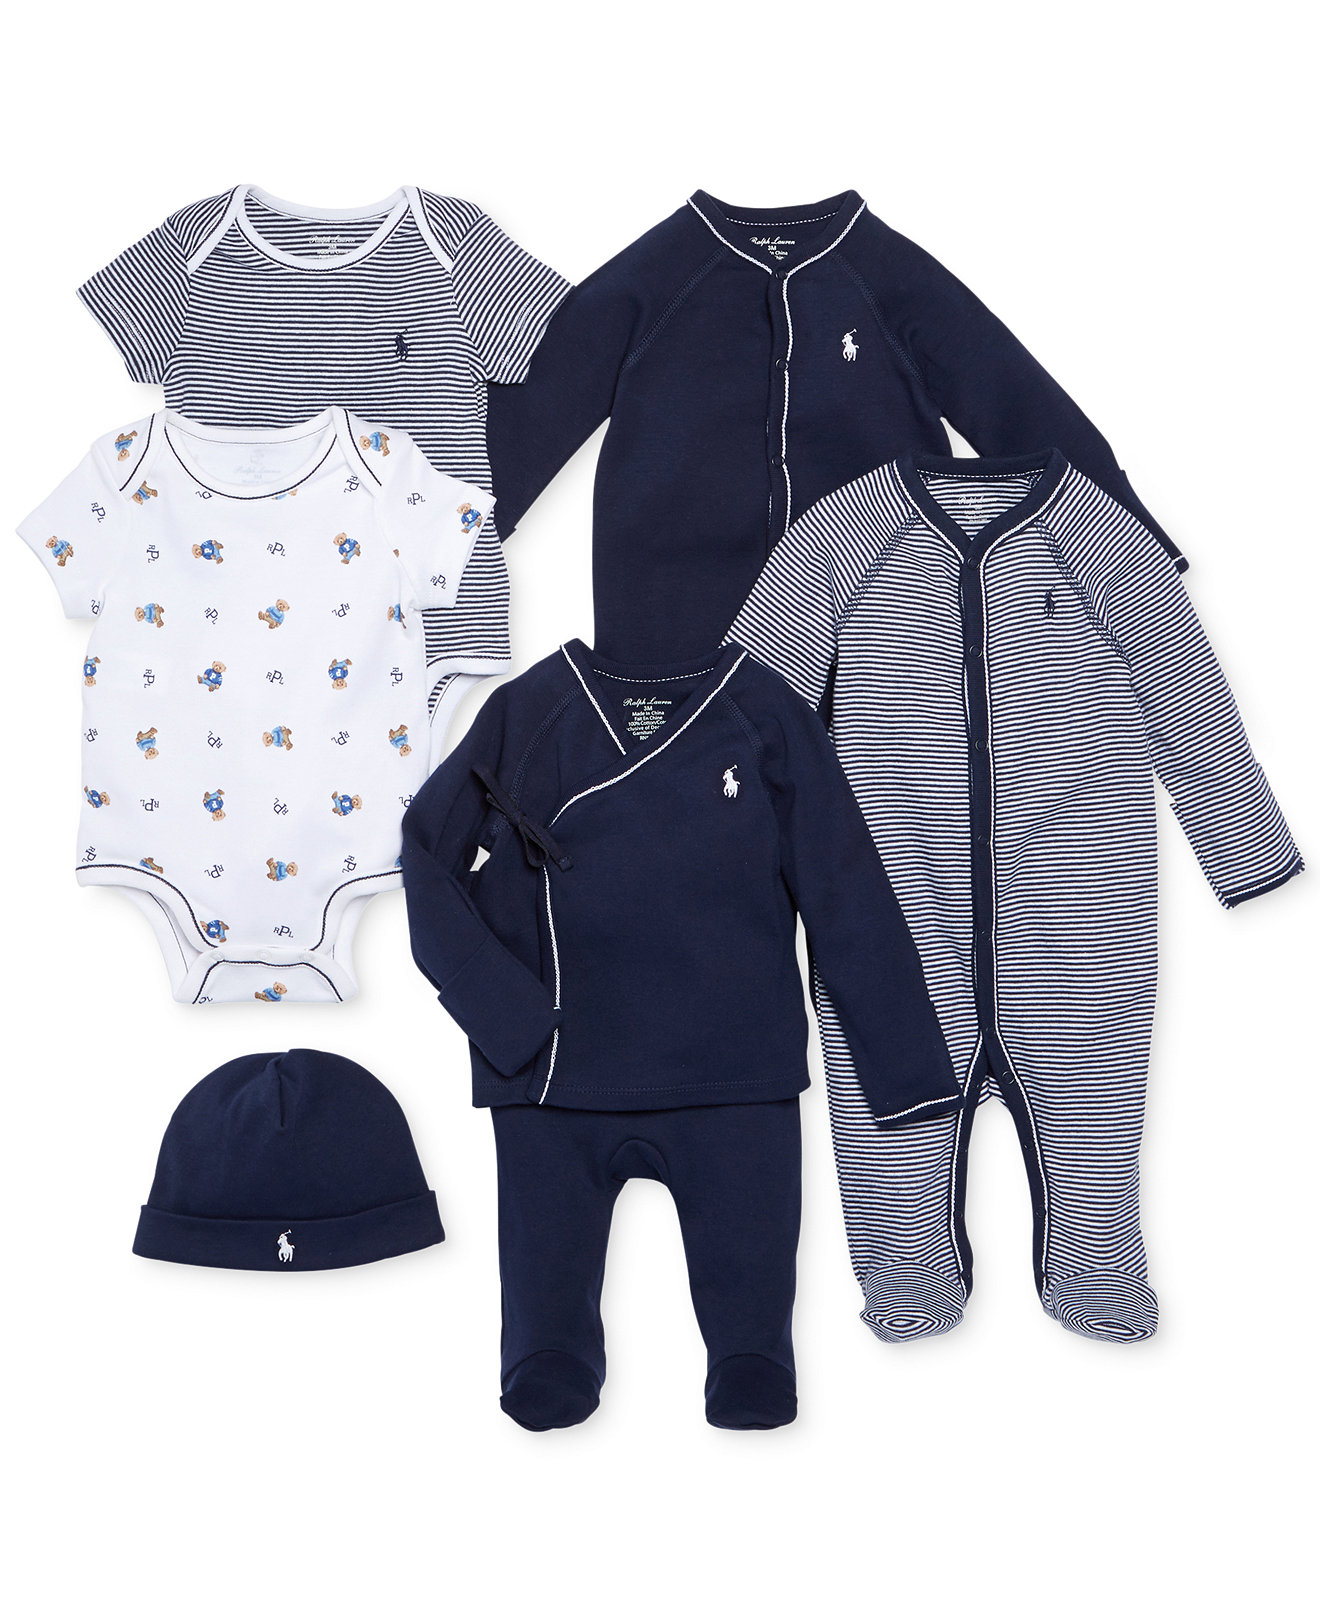 Baby Clothes Brands